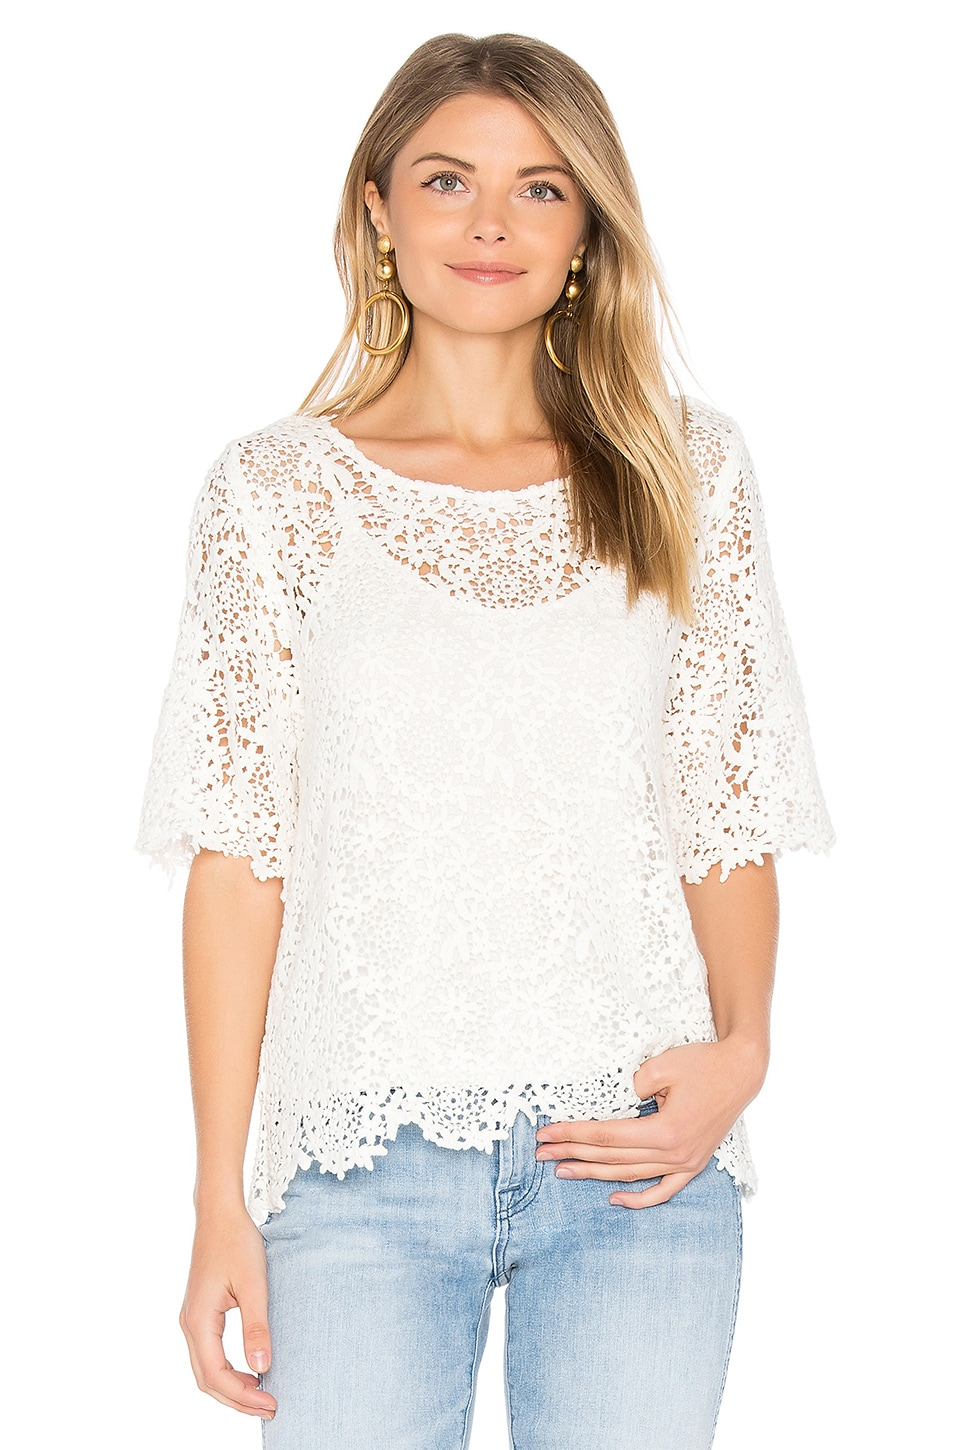 Velvet by Graham & Spencer Colleen Lace Top in White